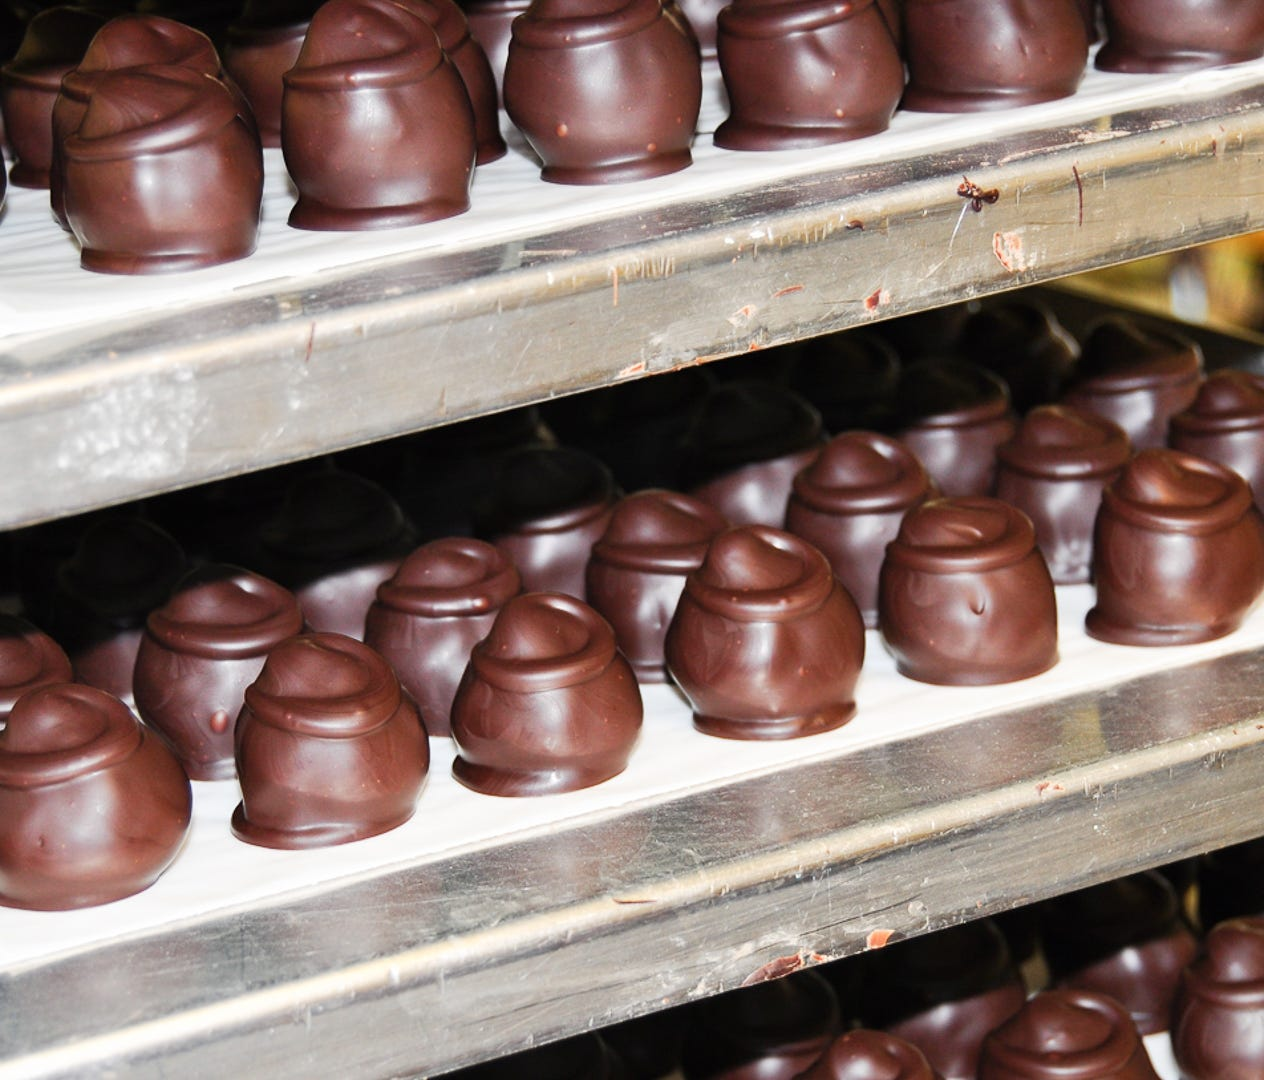 Washington: Indulge in candy - Who can say no to free candy? Take a free, self-guided tour of Boehm's Candies in Issaquah and grab a free sample at the retail shop afterward.    You can also check out Liberty Orchards in Downtown Cashmere. Known for it